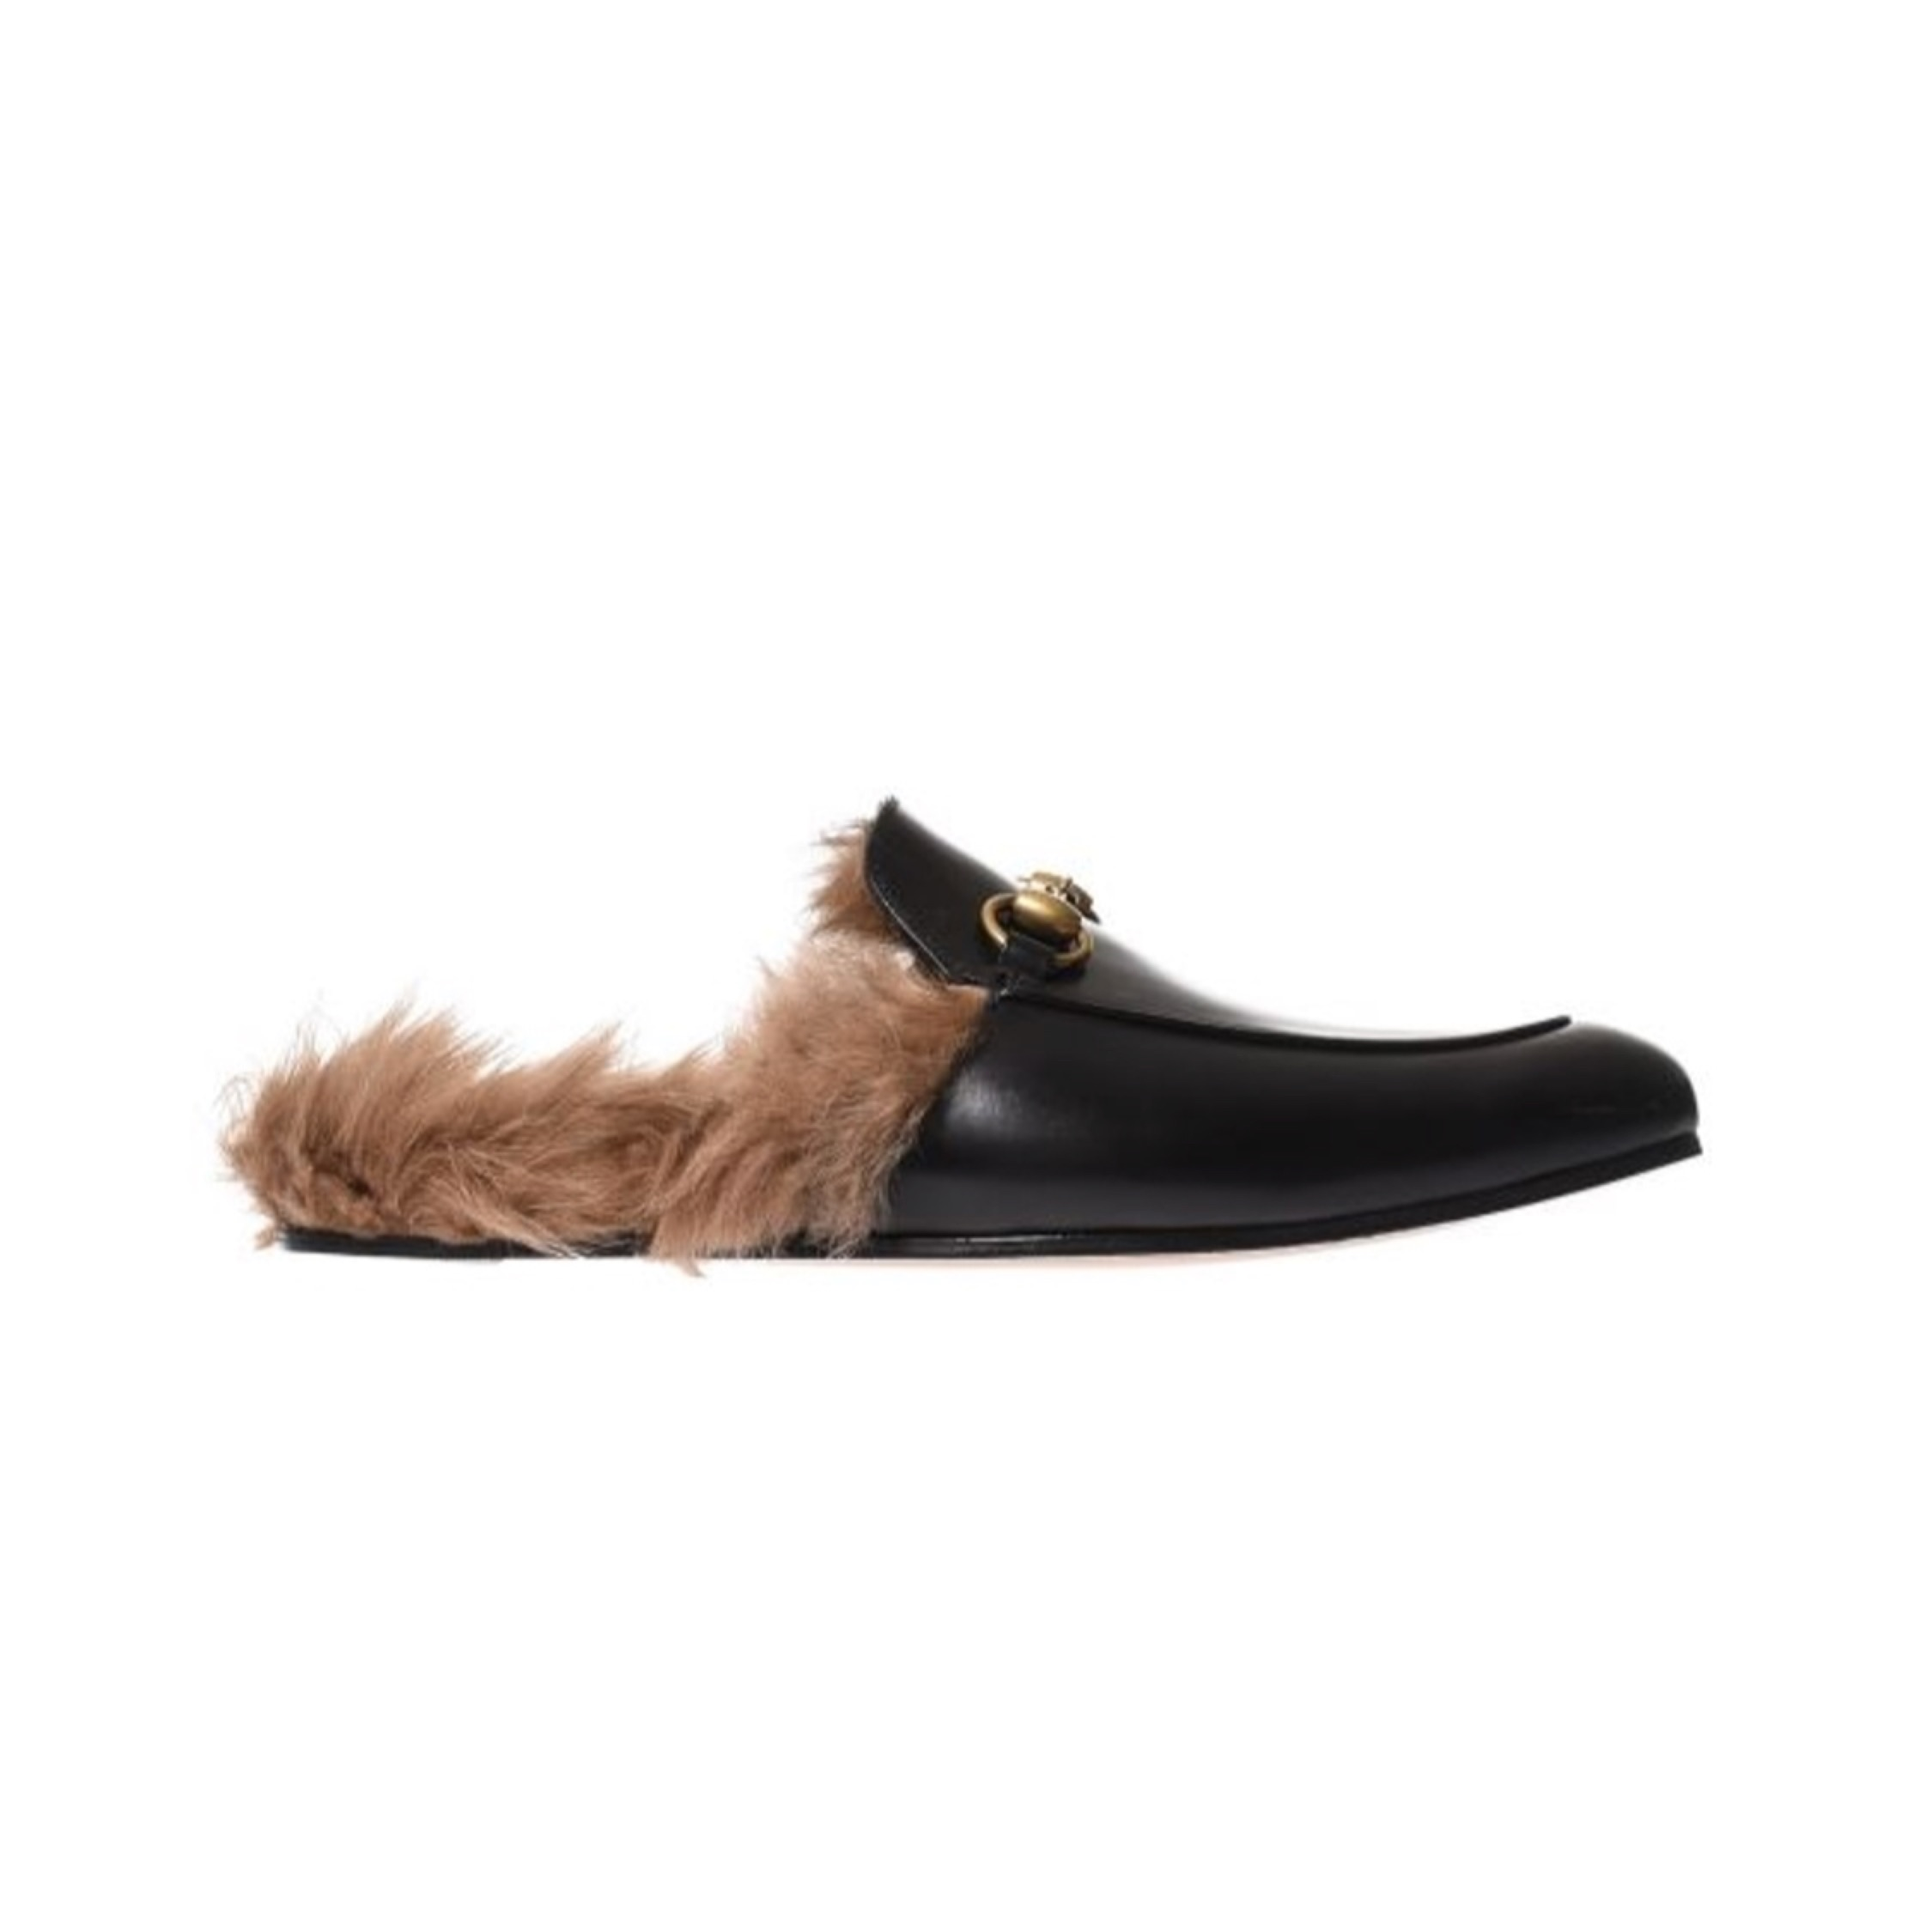 c7c82b7281c Gucci Princetown Leather Slipper New Size 6